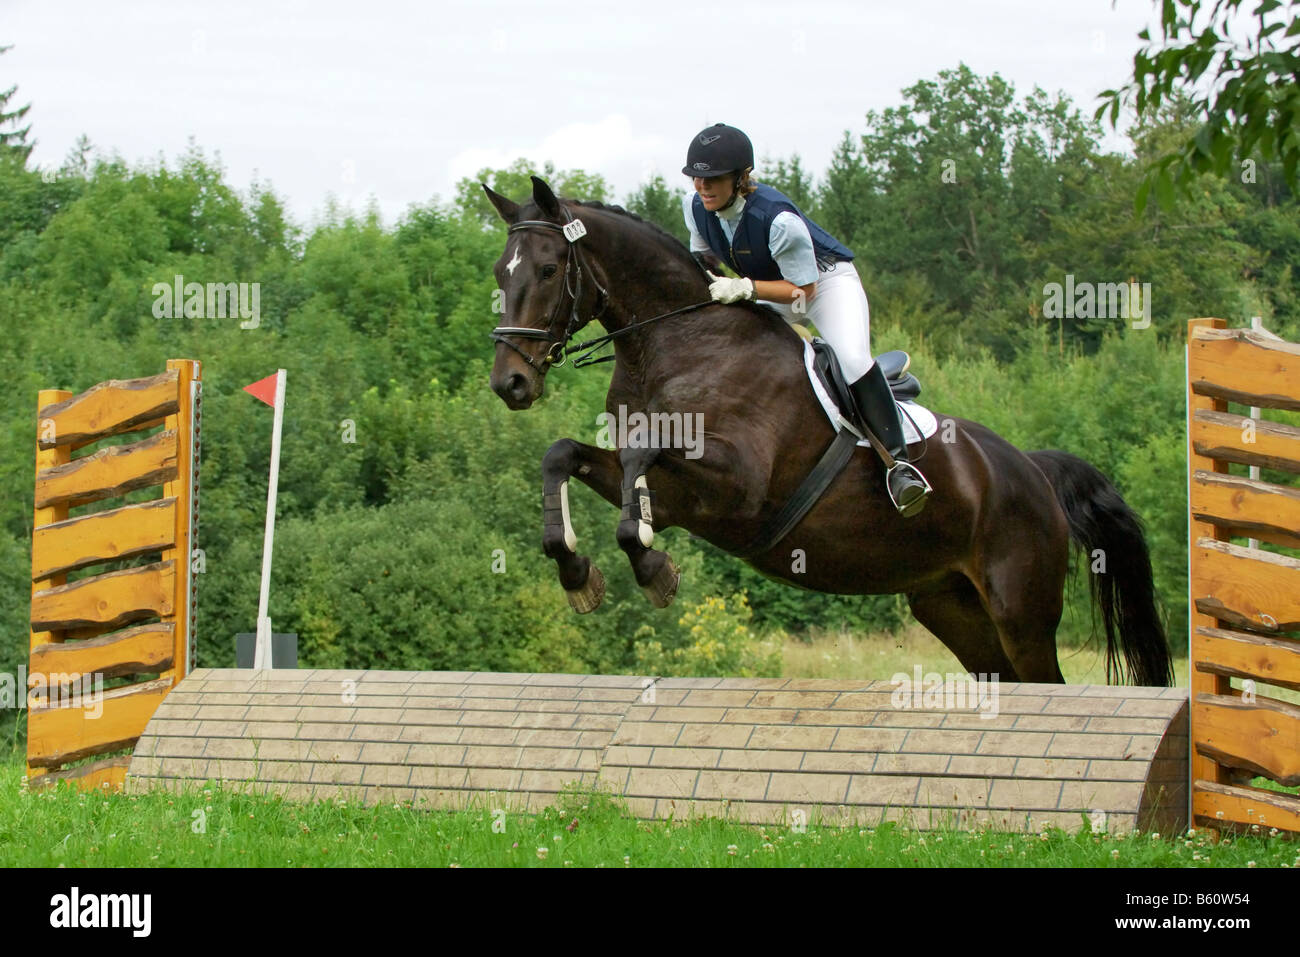 Young rider during an entry level cross country competition - Stock Image